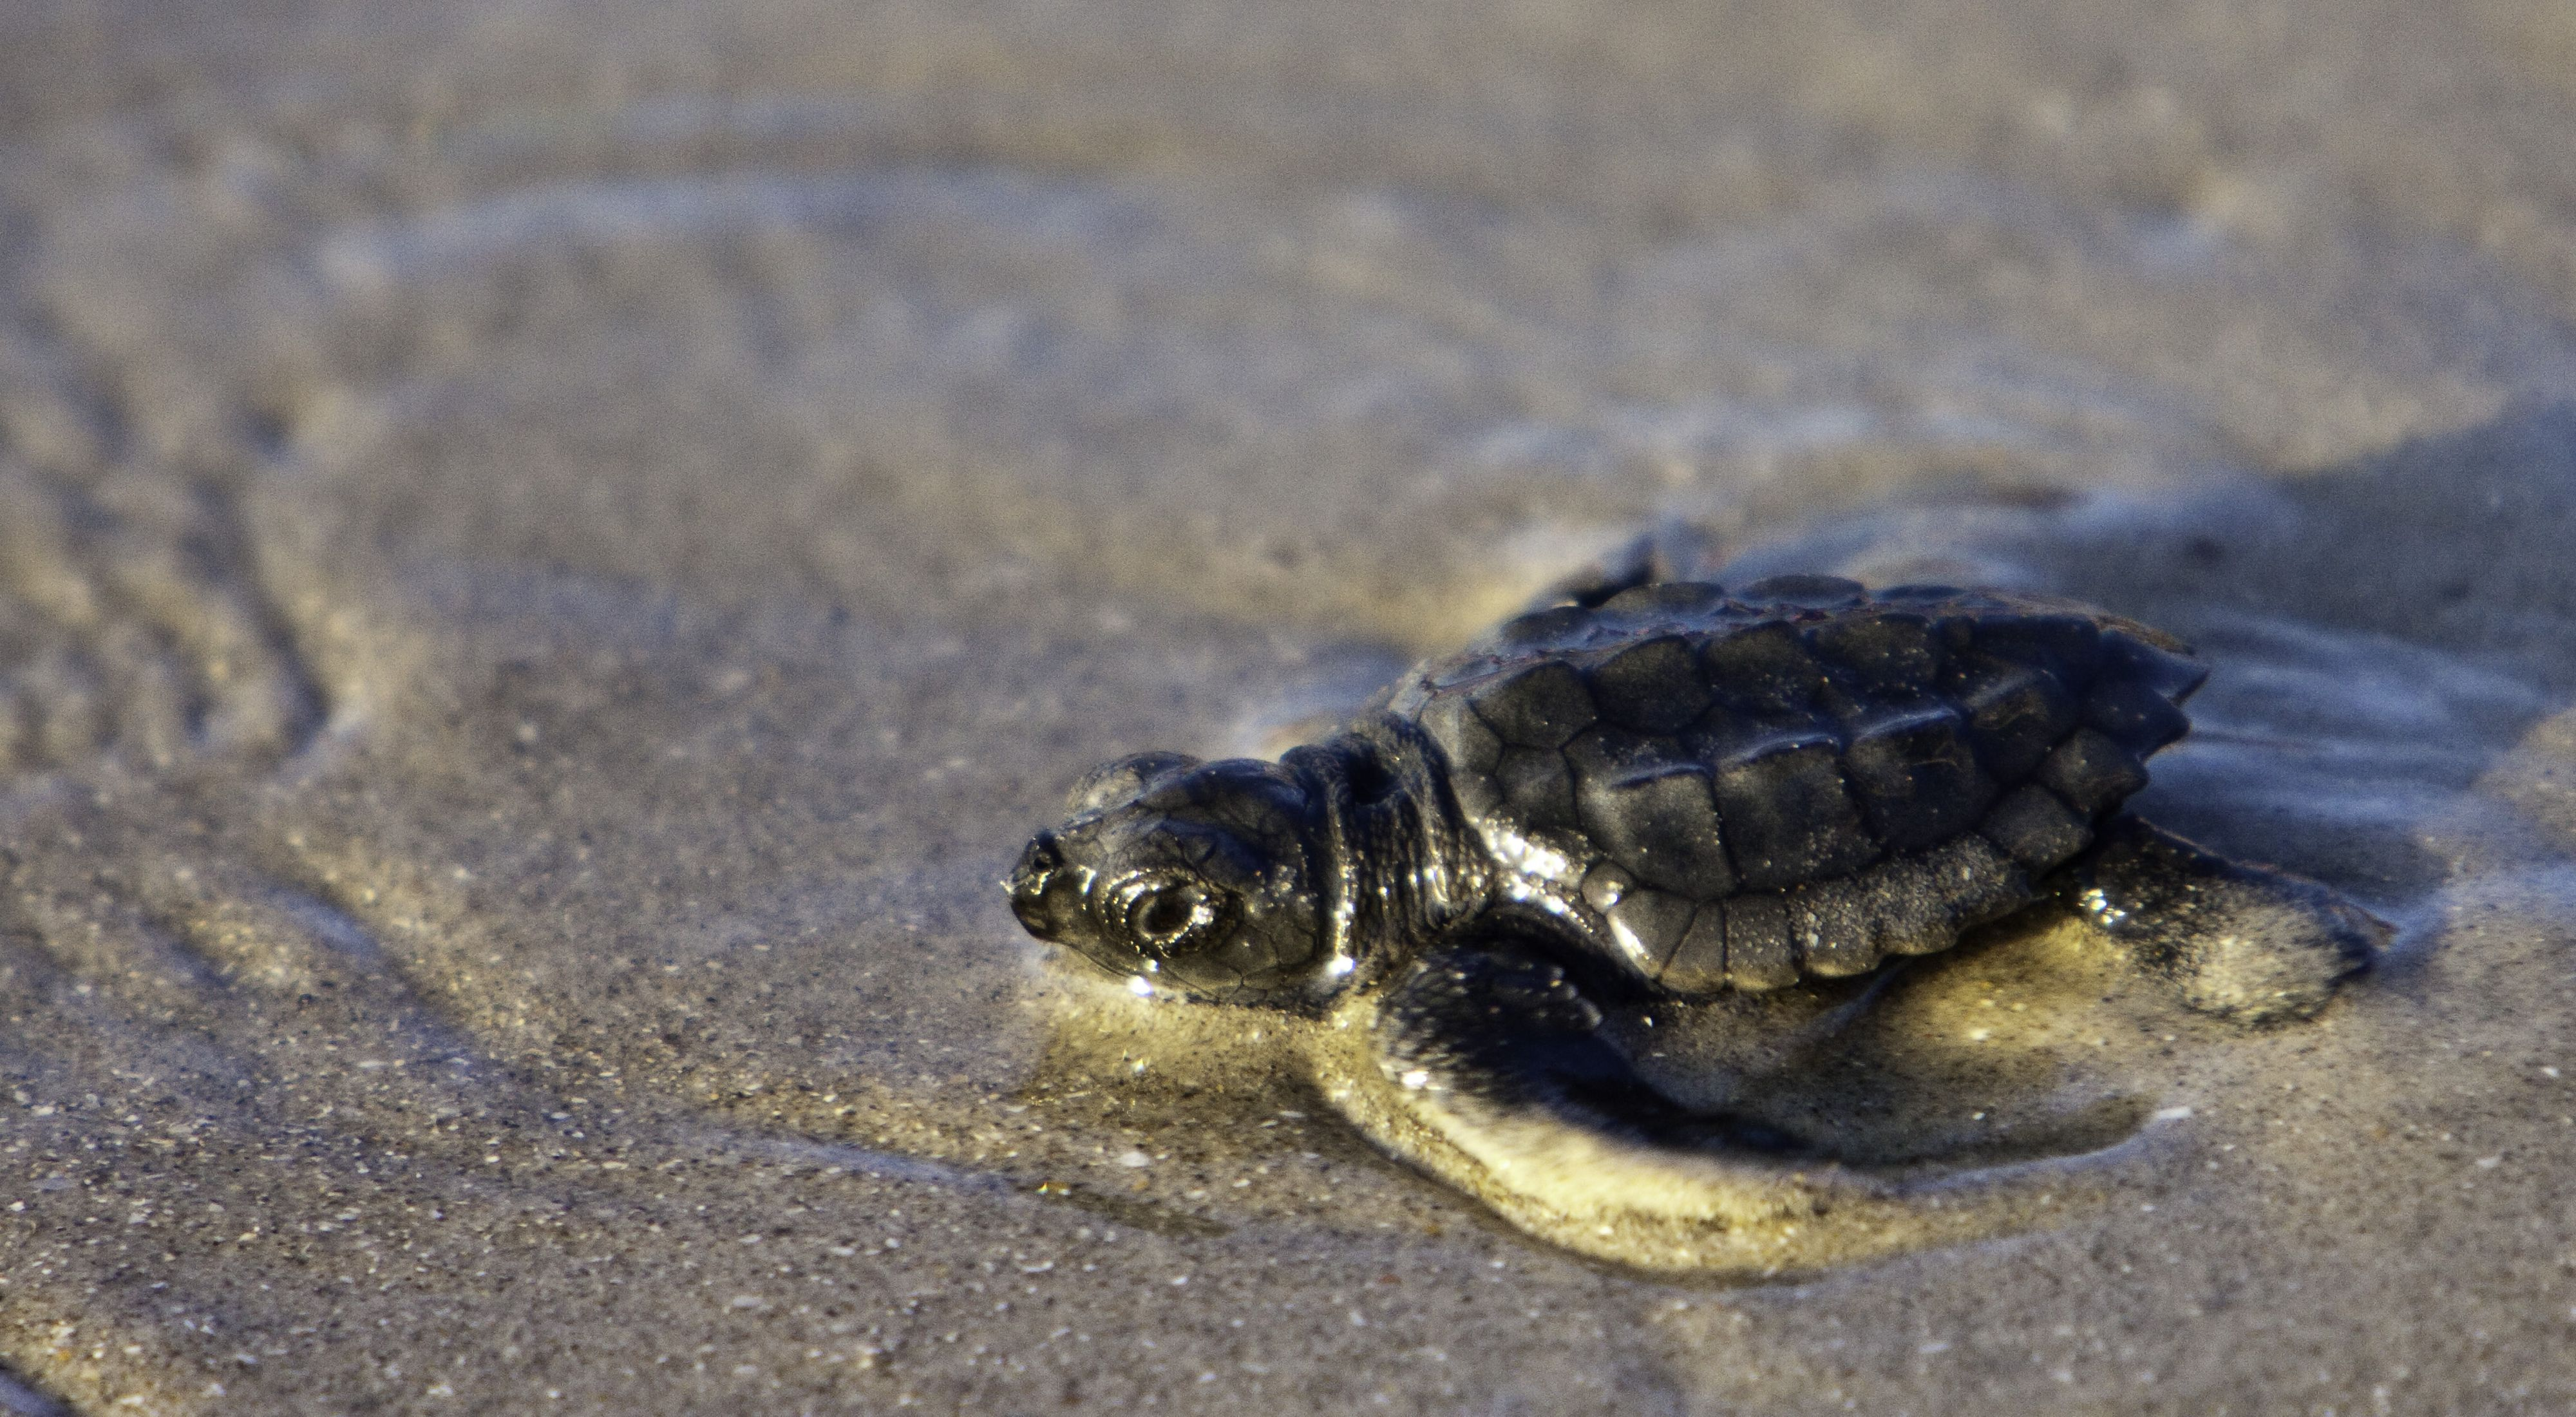 A tiny sea turtle sits in wet sand.